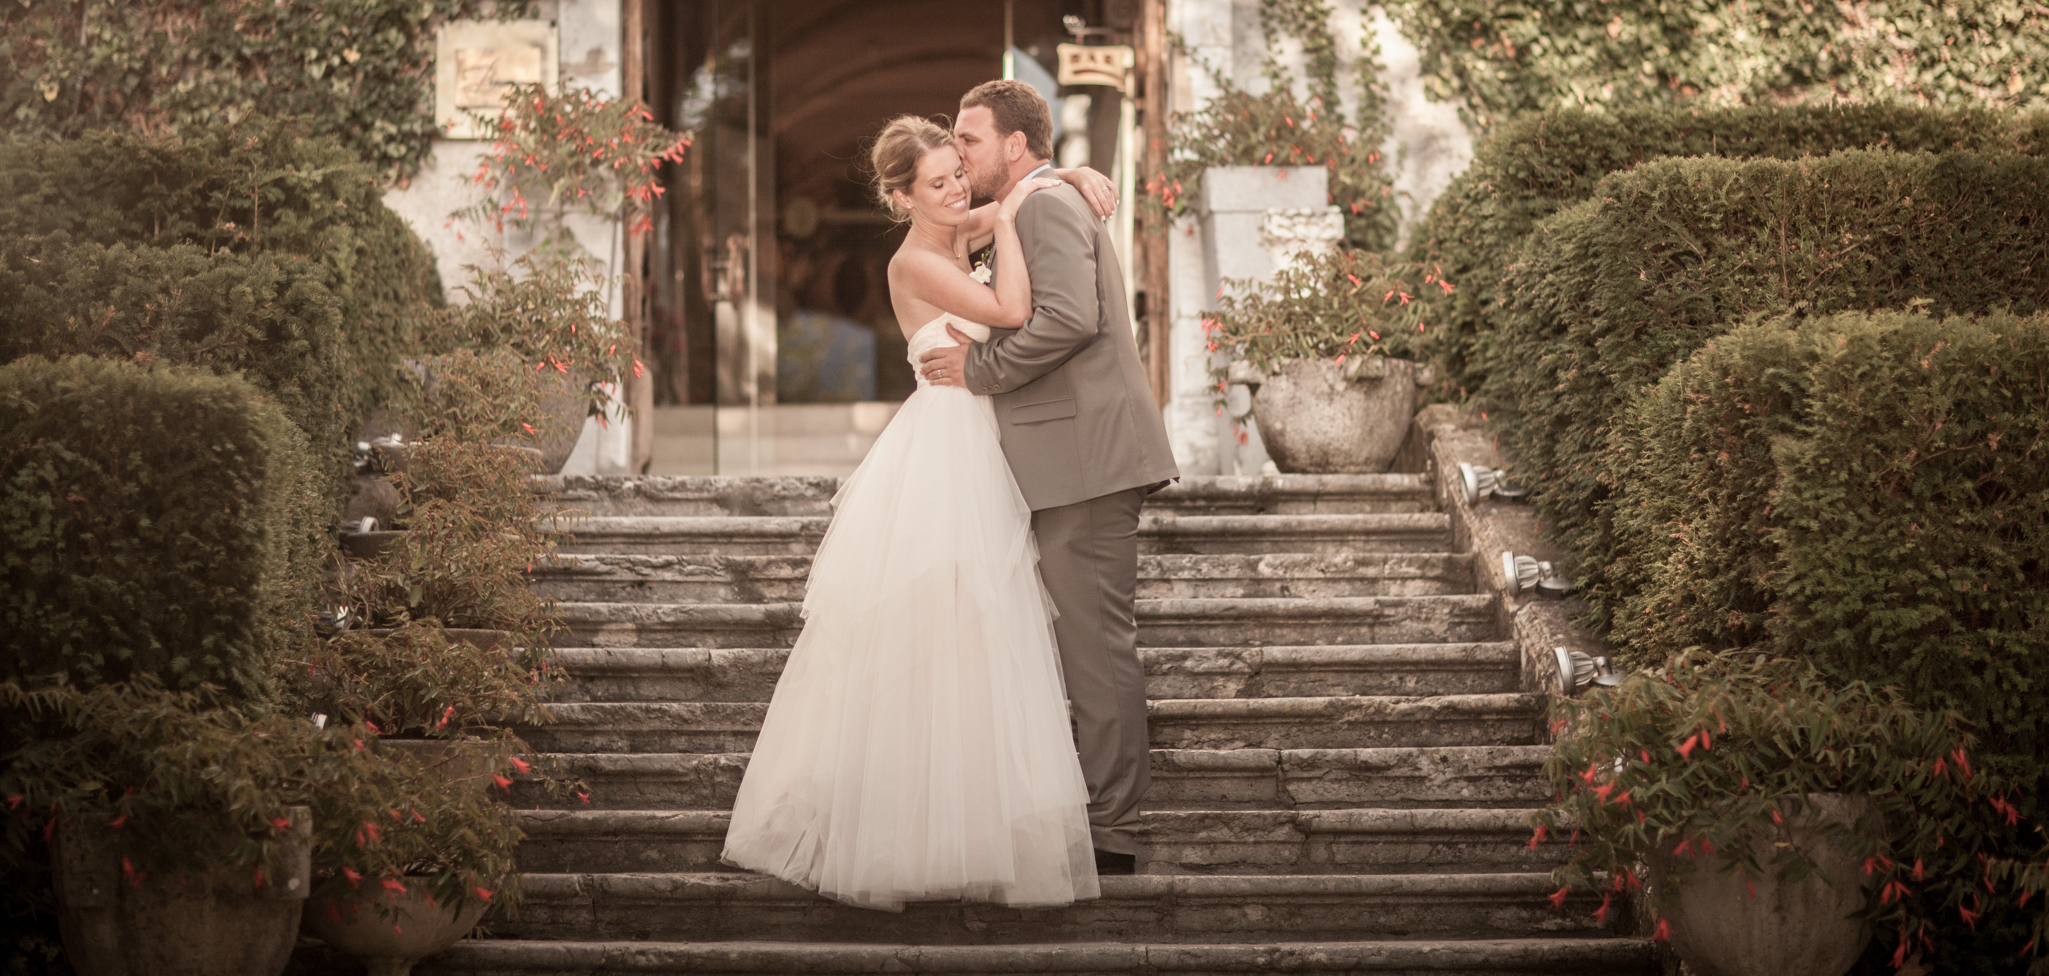 photographe-mariage-ardeche-rhone-alpes-geneve-suisse-photo-abbaye-talloires-30